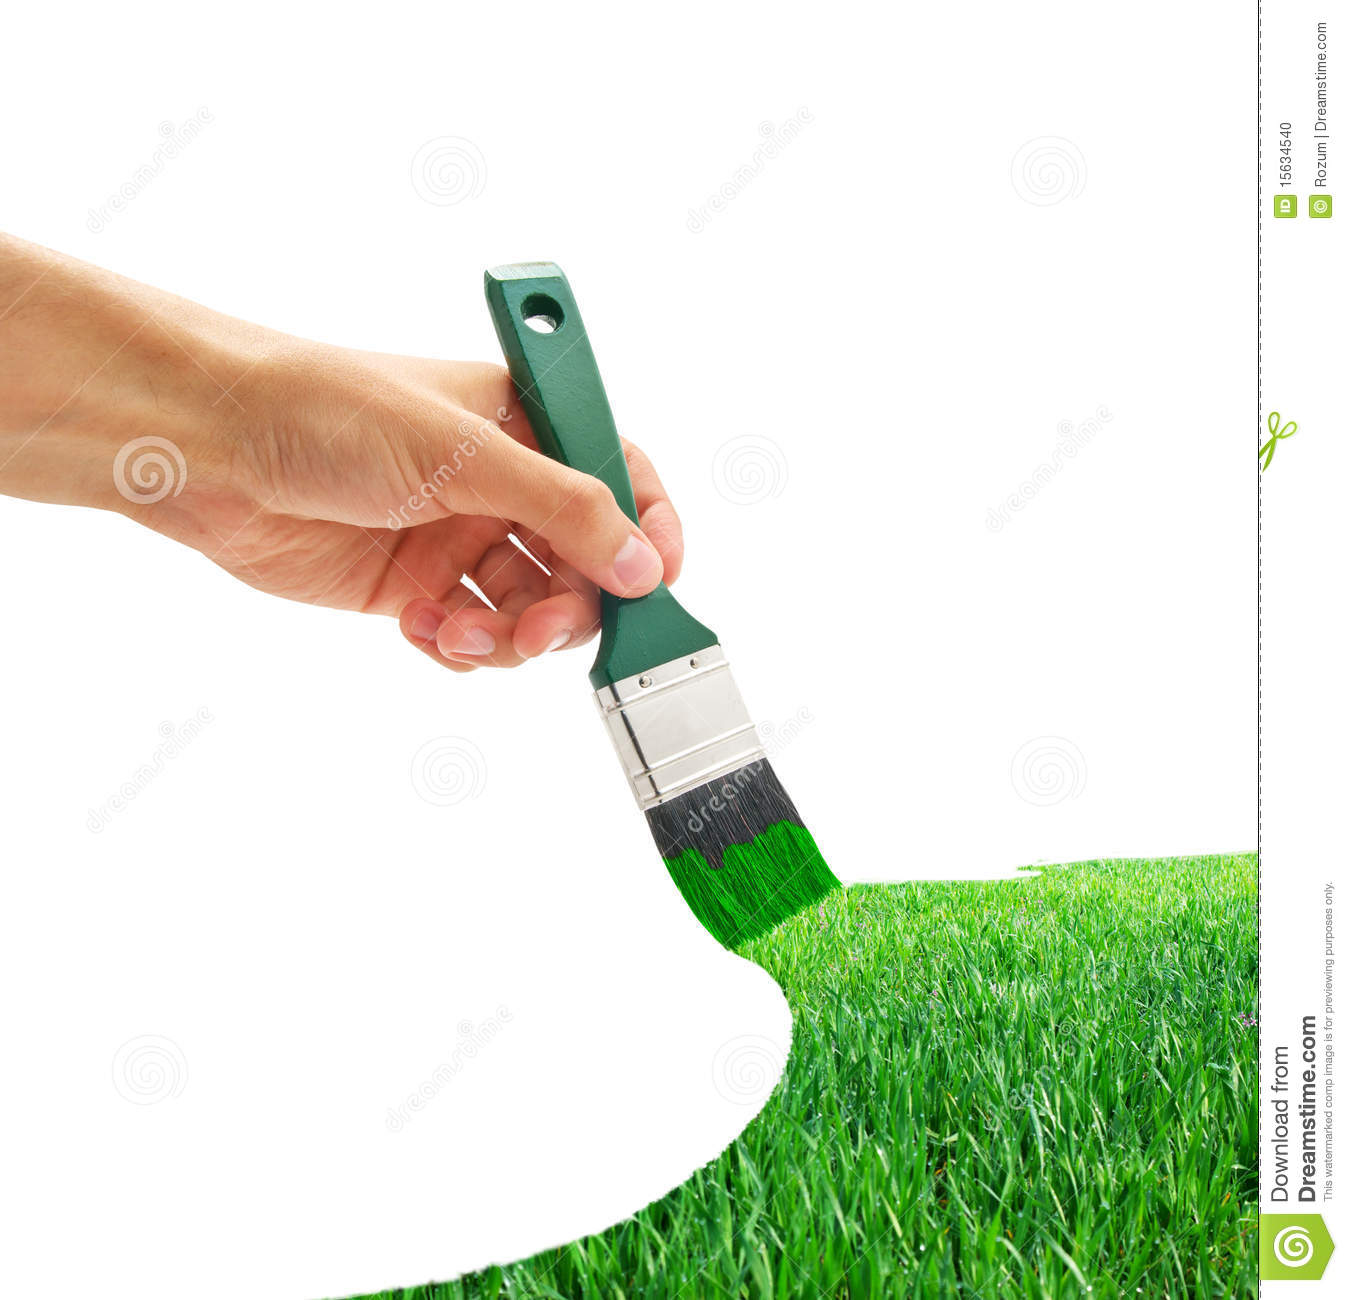 Drawing the grass